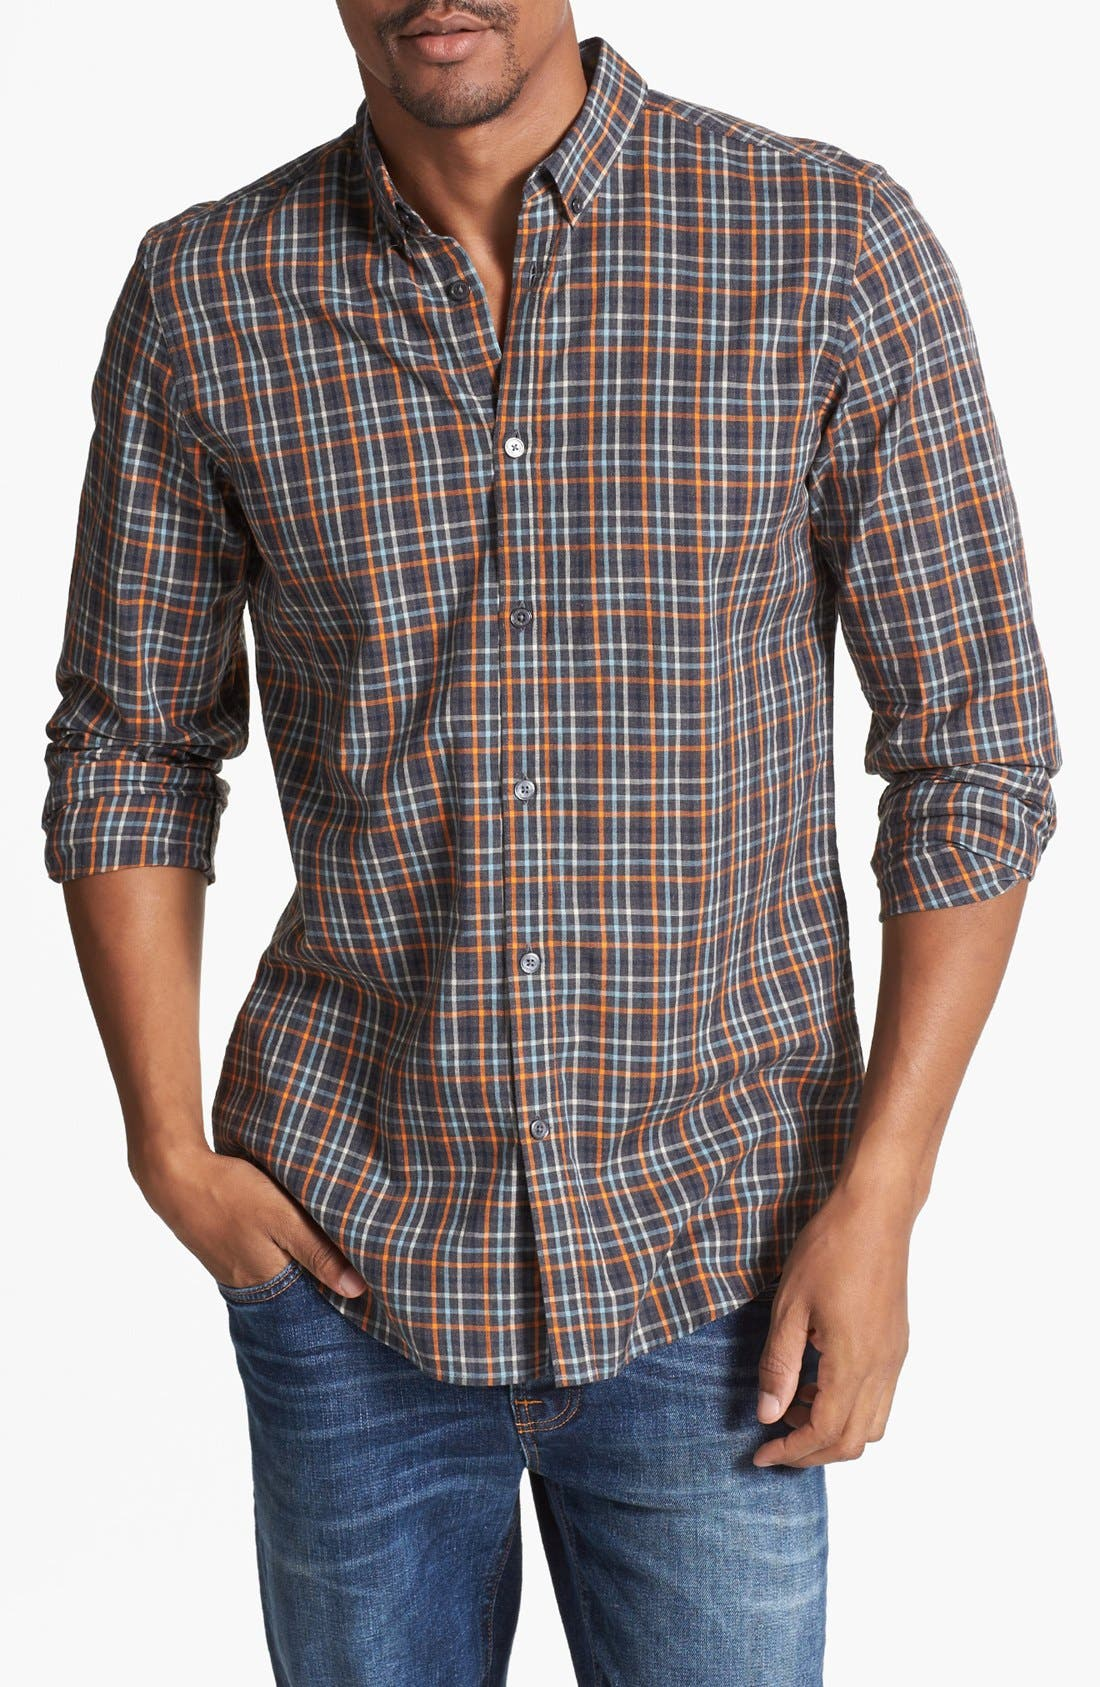 Alternate Image 1 Selected - Ben Sherman Slim Fit Plaid Shirt